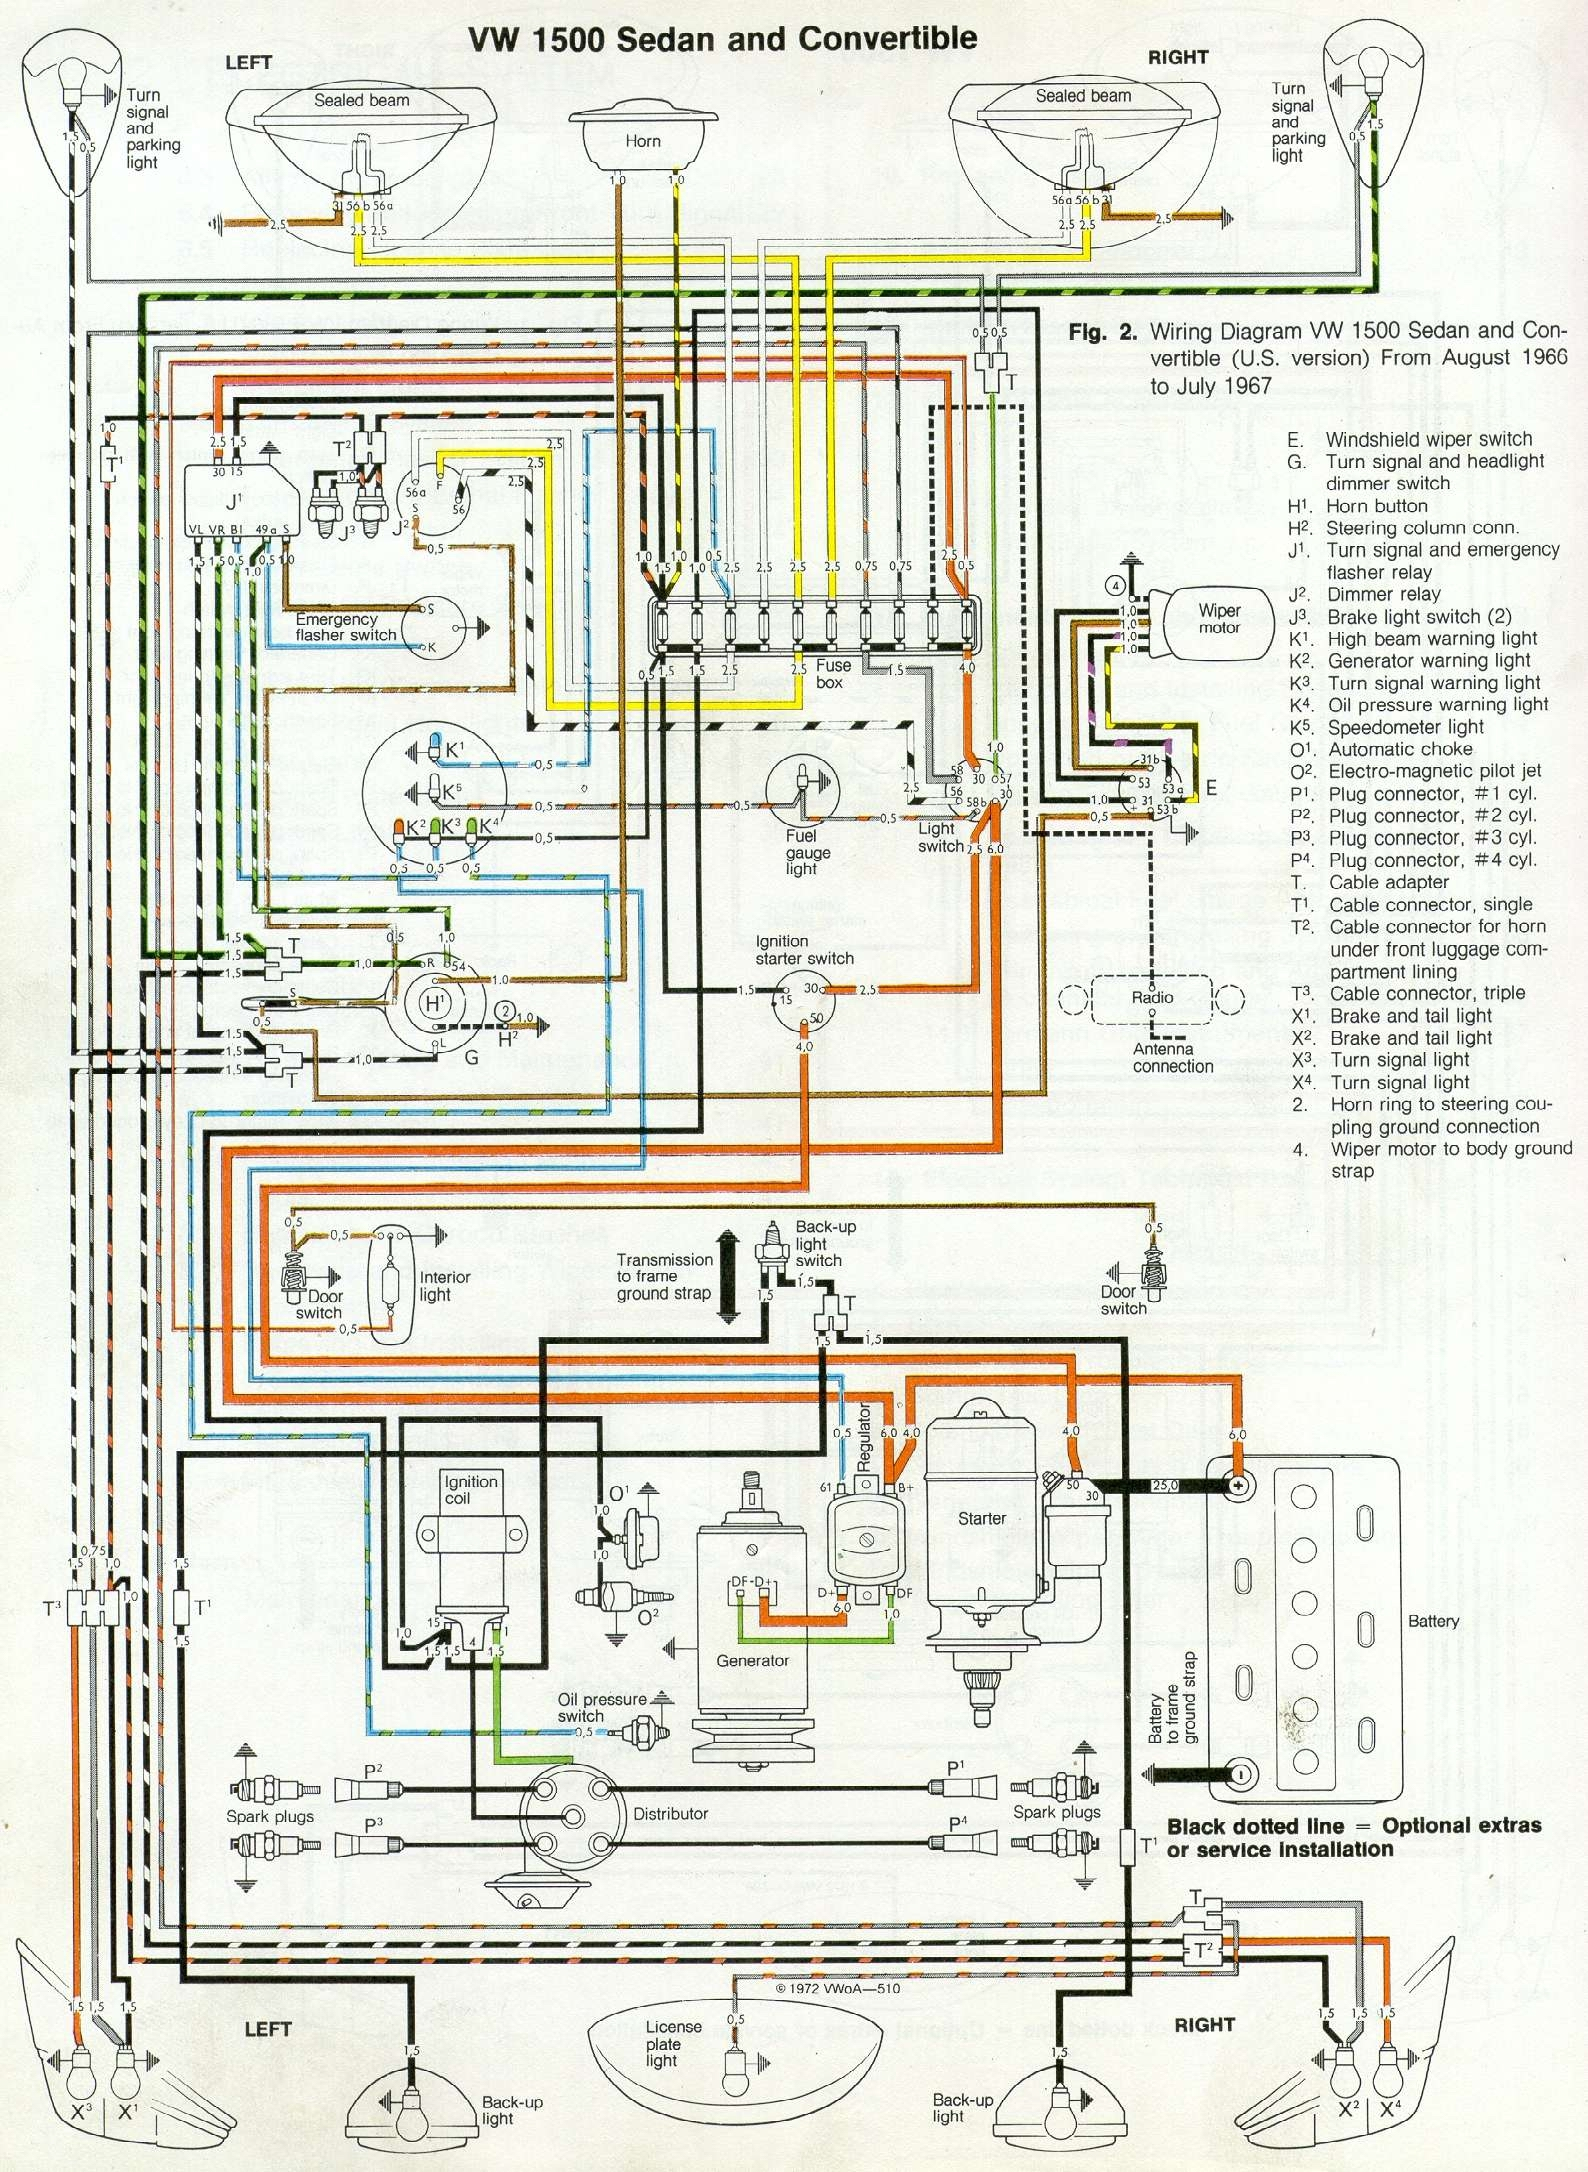 66 and 67 vw beetle wiring diagram 1967 vw beetle rh 1967beetle com Basic Electrical Wiring Diagrams Light Switch Wiring Diagram